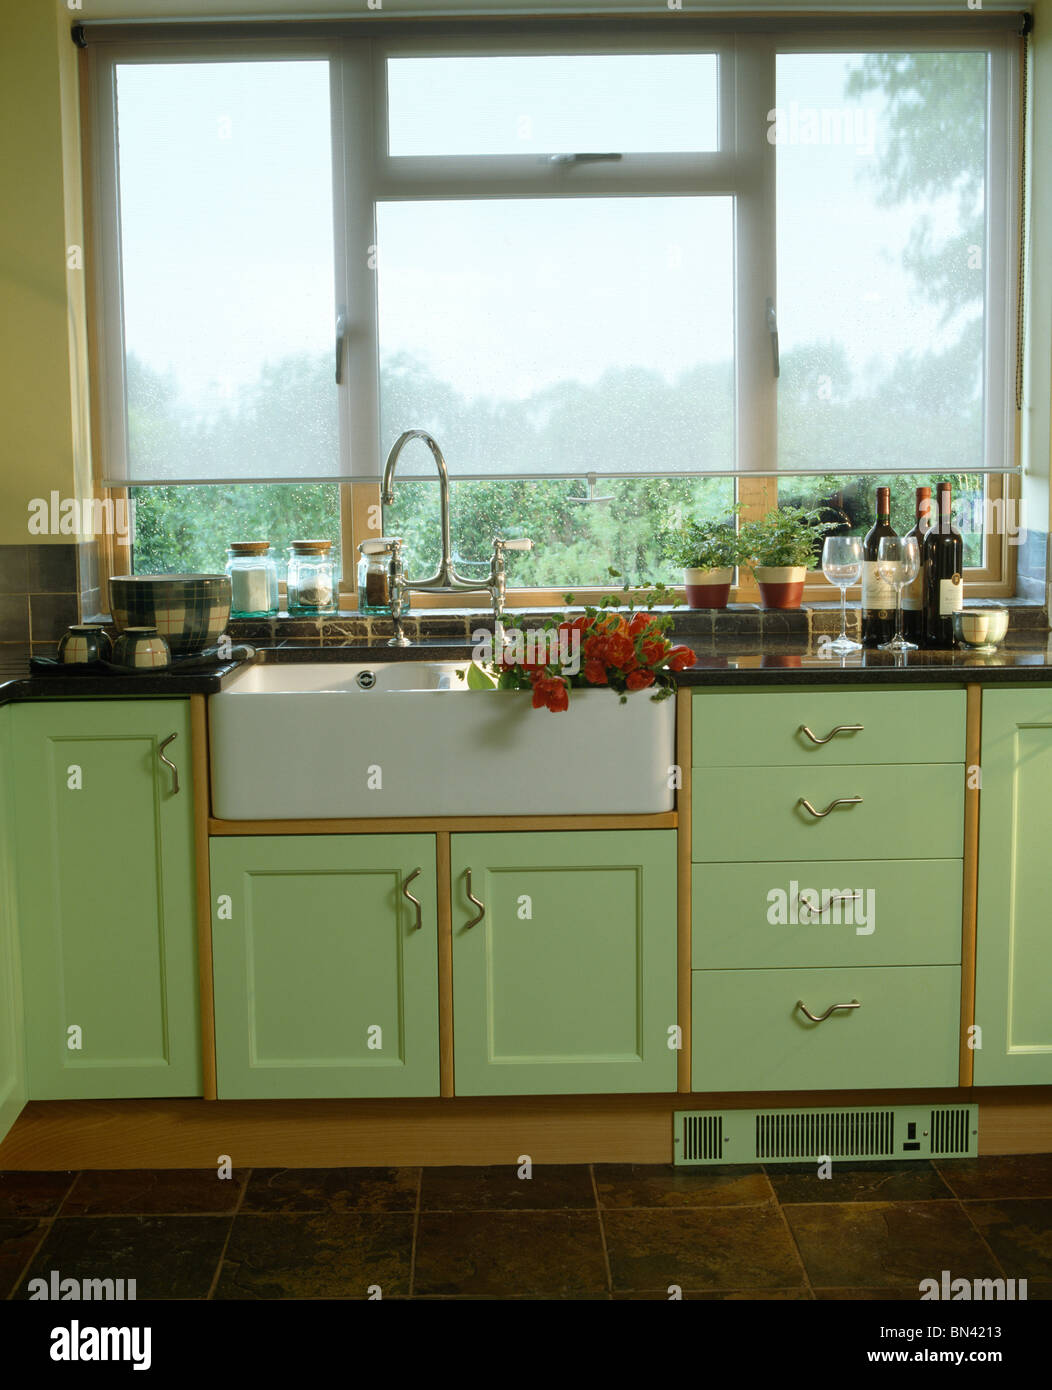 Green country kitchen - Stock Photo White Blind On Window Above Belfast Sink In Country Kitchen With Pale Green Fitted Units